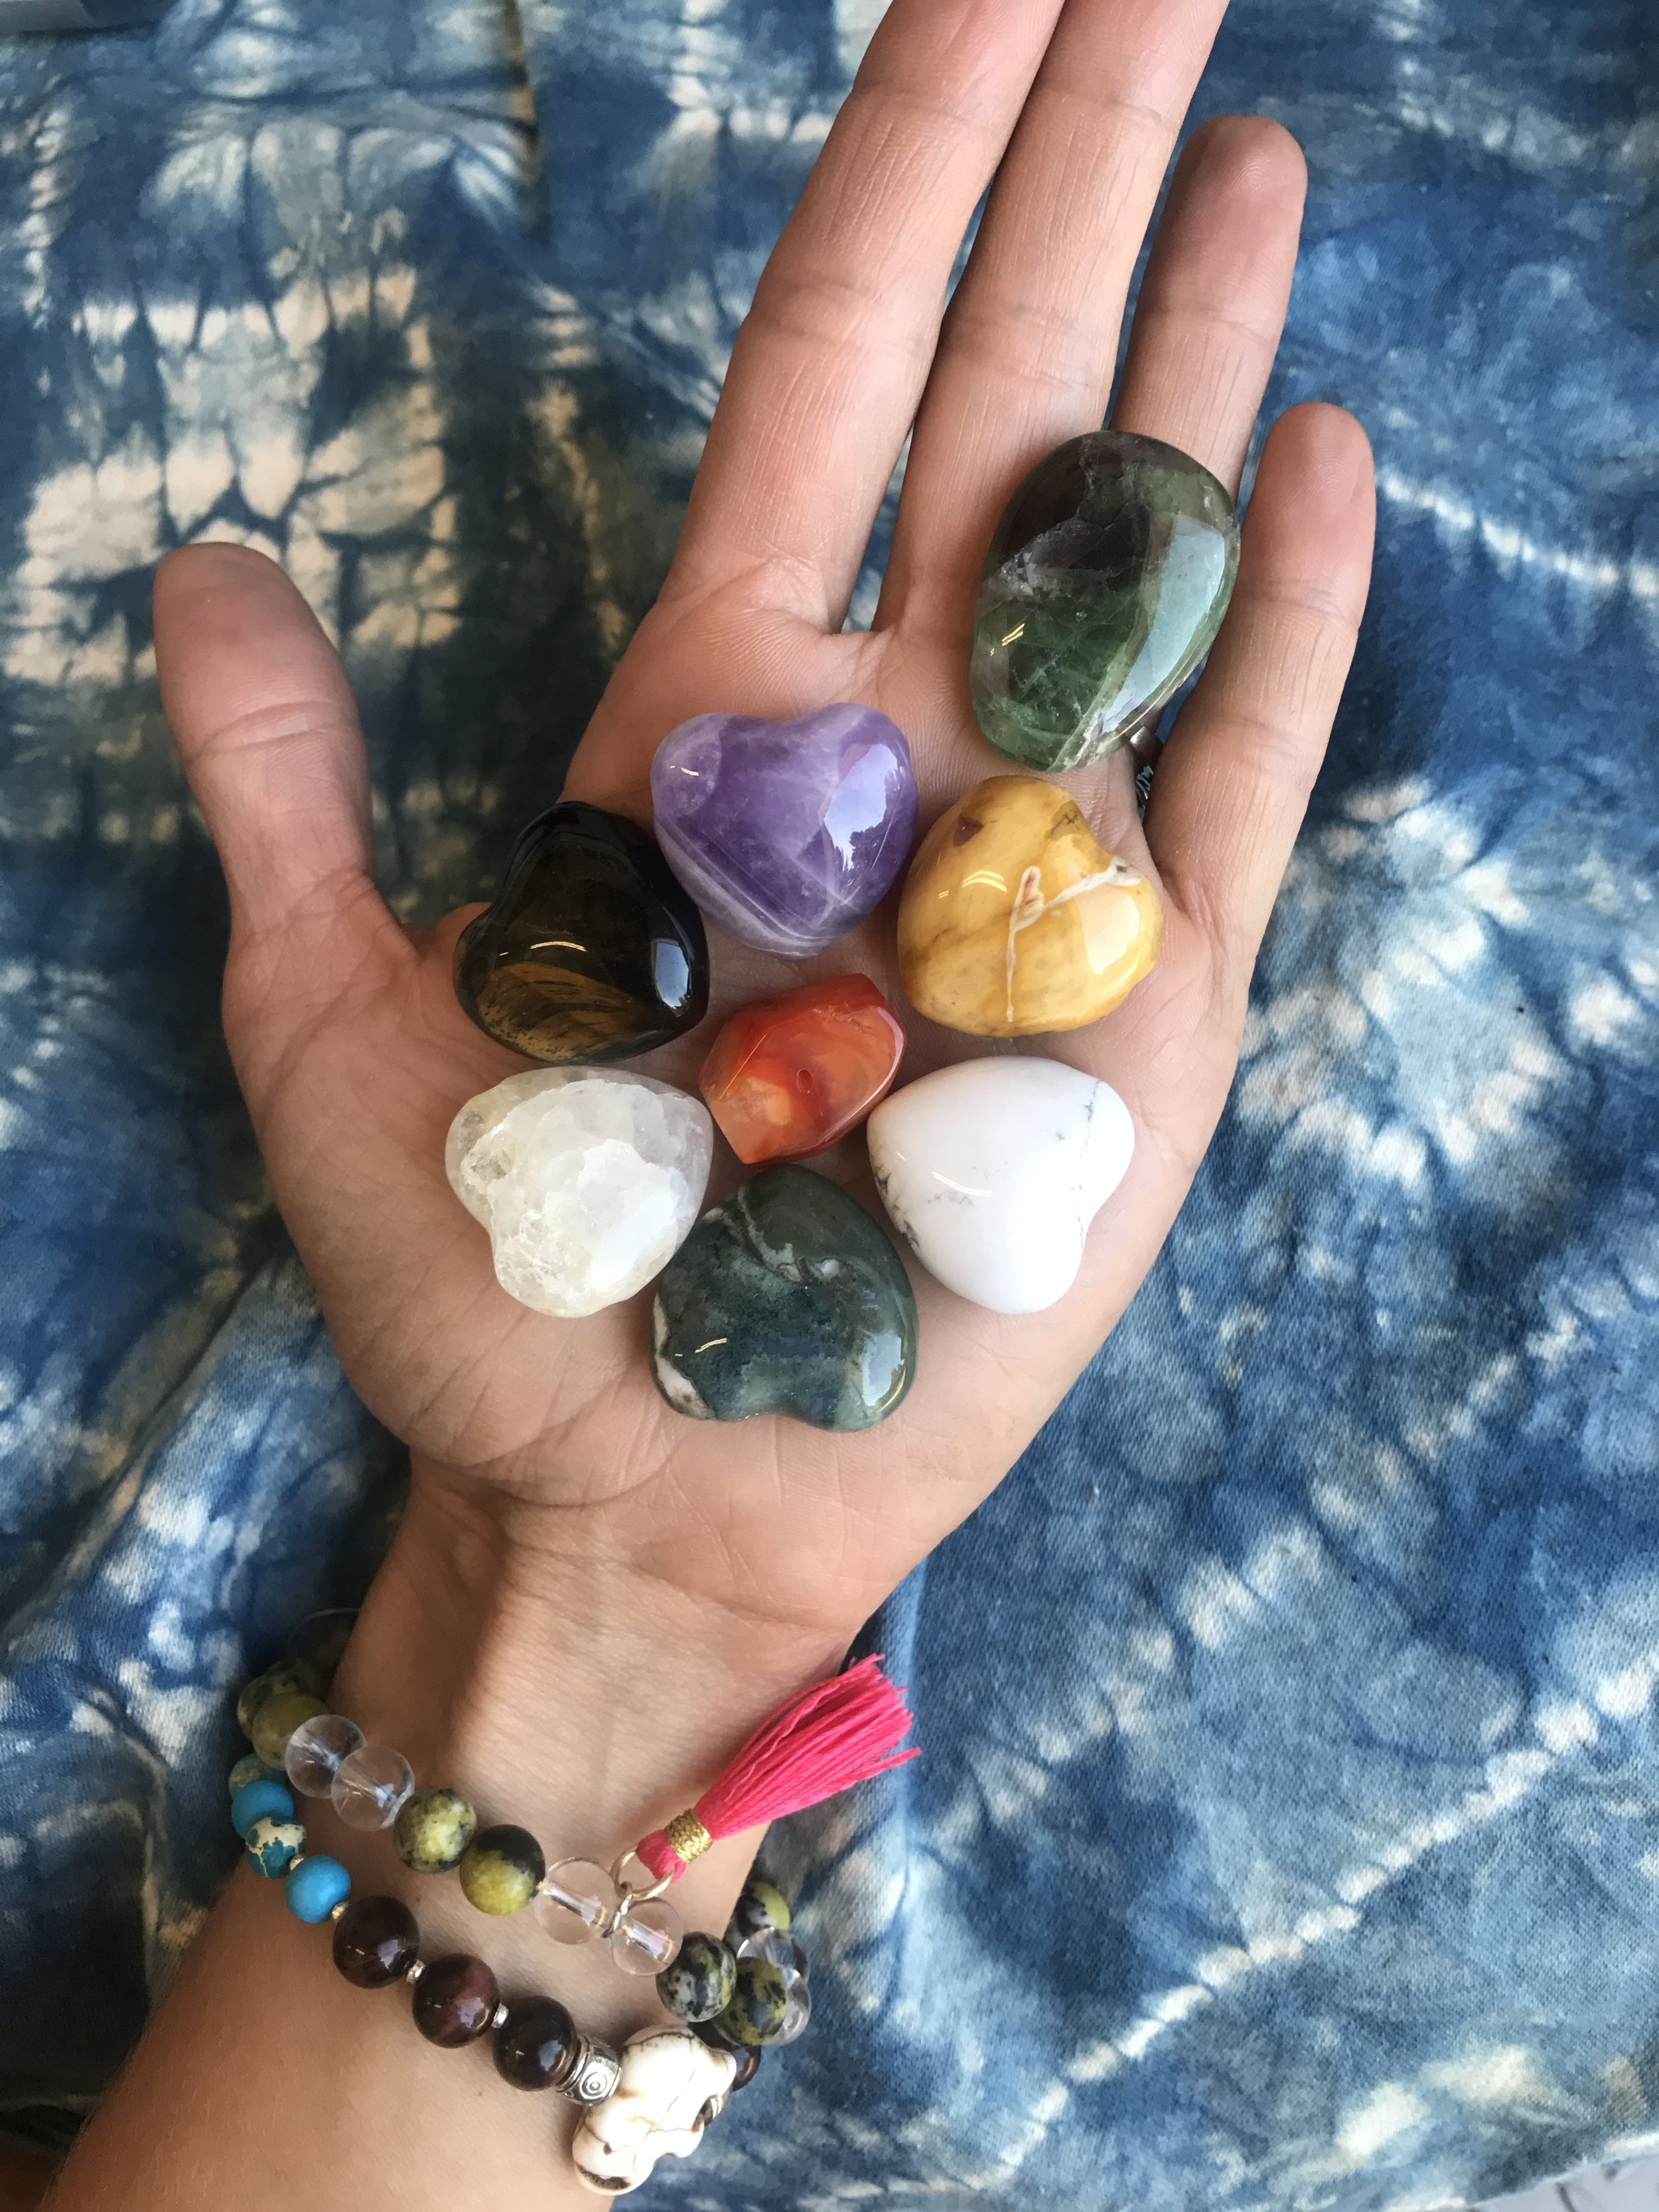 CURIOUS ABOUT THE HEALING BENEFITS OF SPECIAL GEMS? -